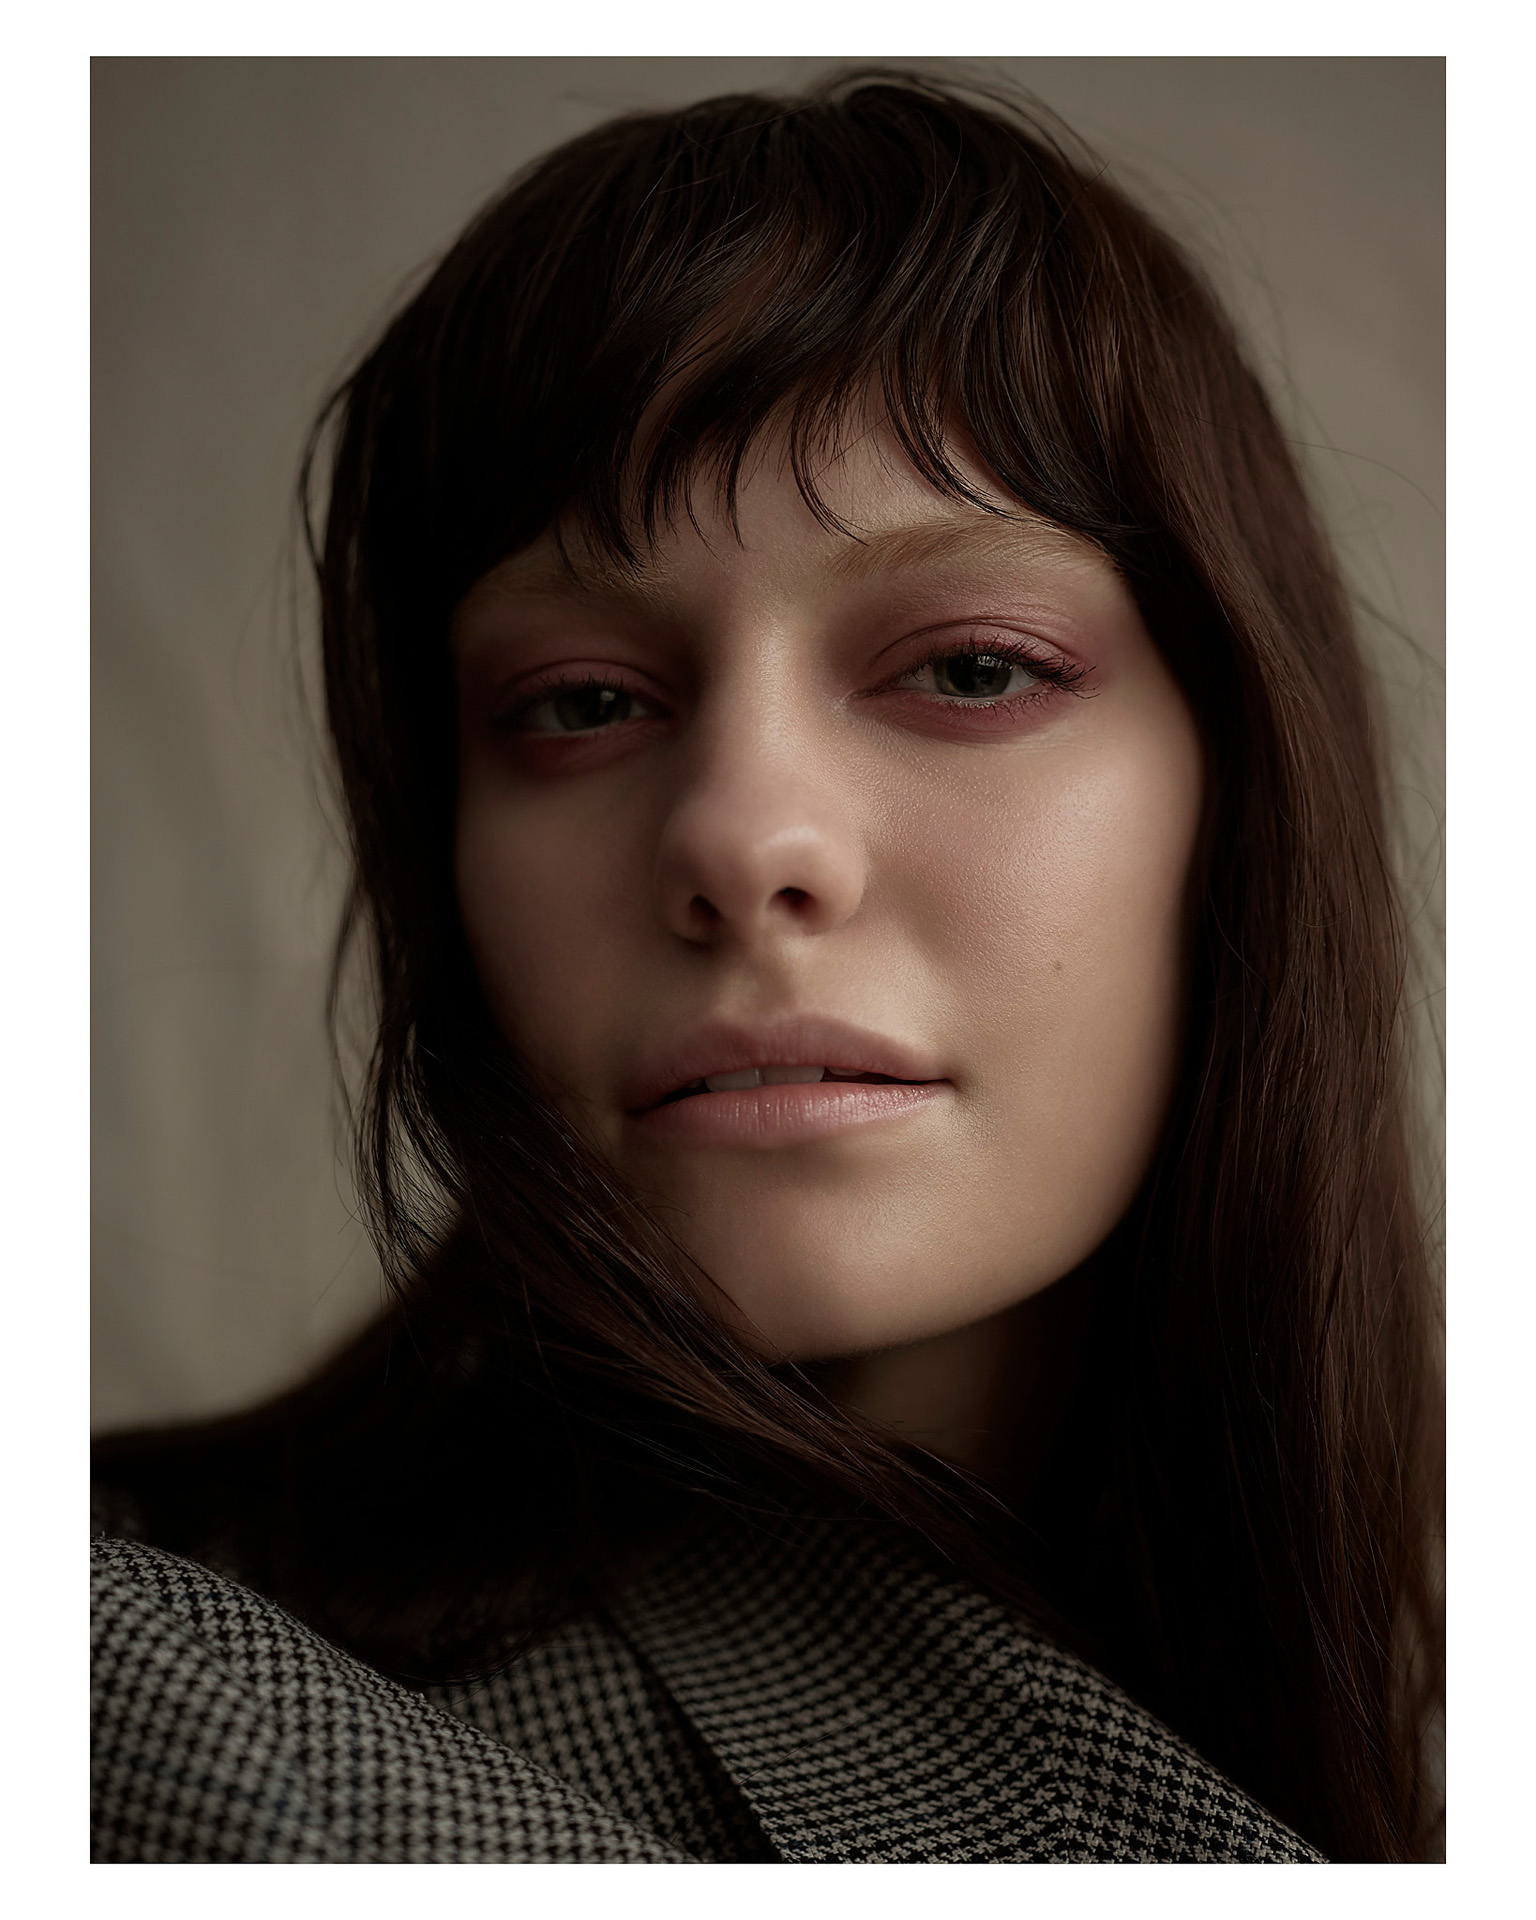 close up shot of woman model face looking at camera wearing soft pink makeup and checkered oversized suit jacket by Maxyme G Delisle for Mariane